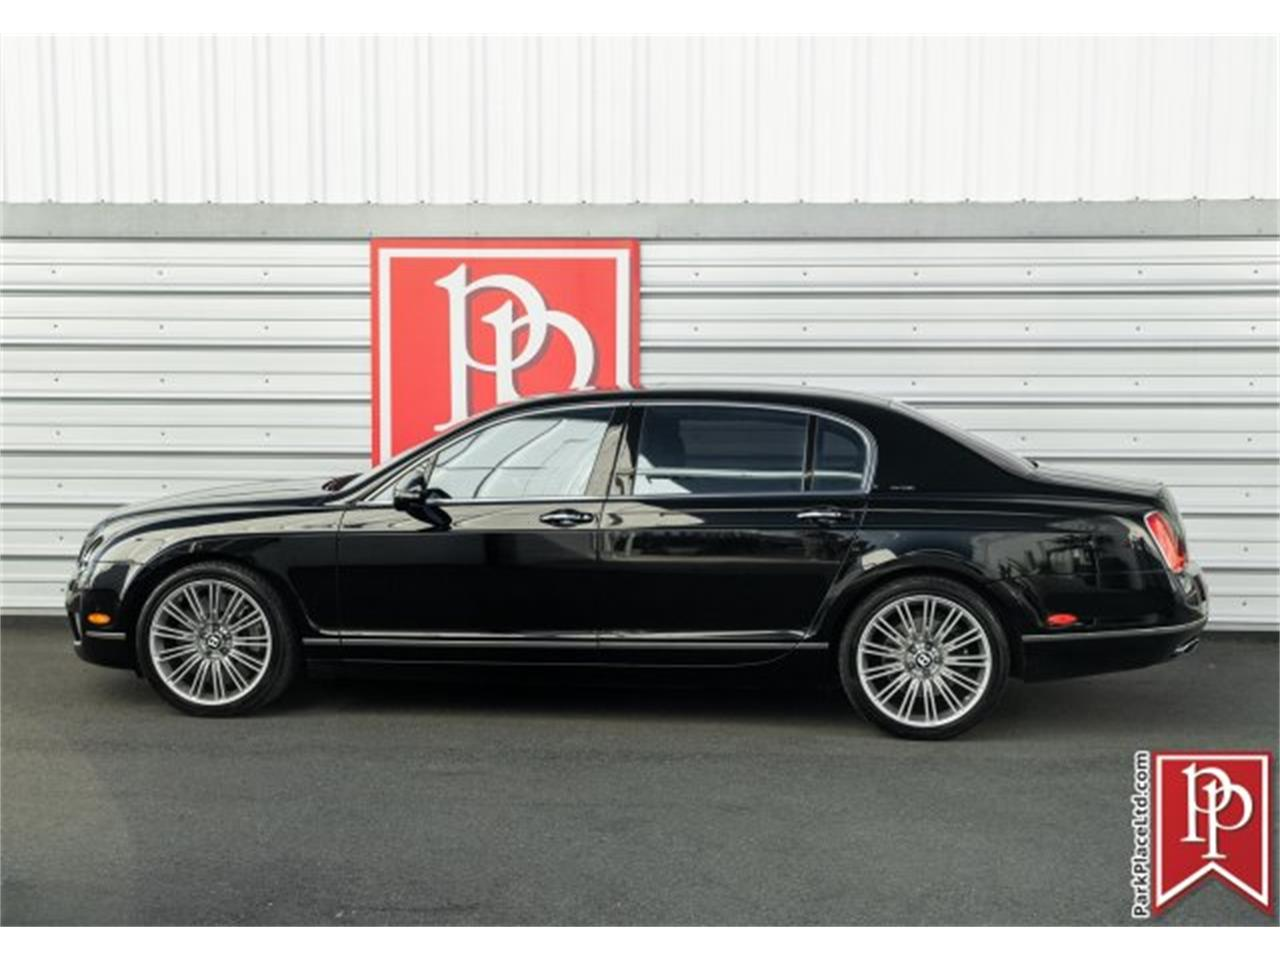 Large Picture of 2010 Continental Flying Spur located in Washington - $59,950.00 - PSB8